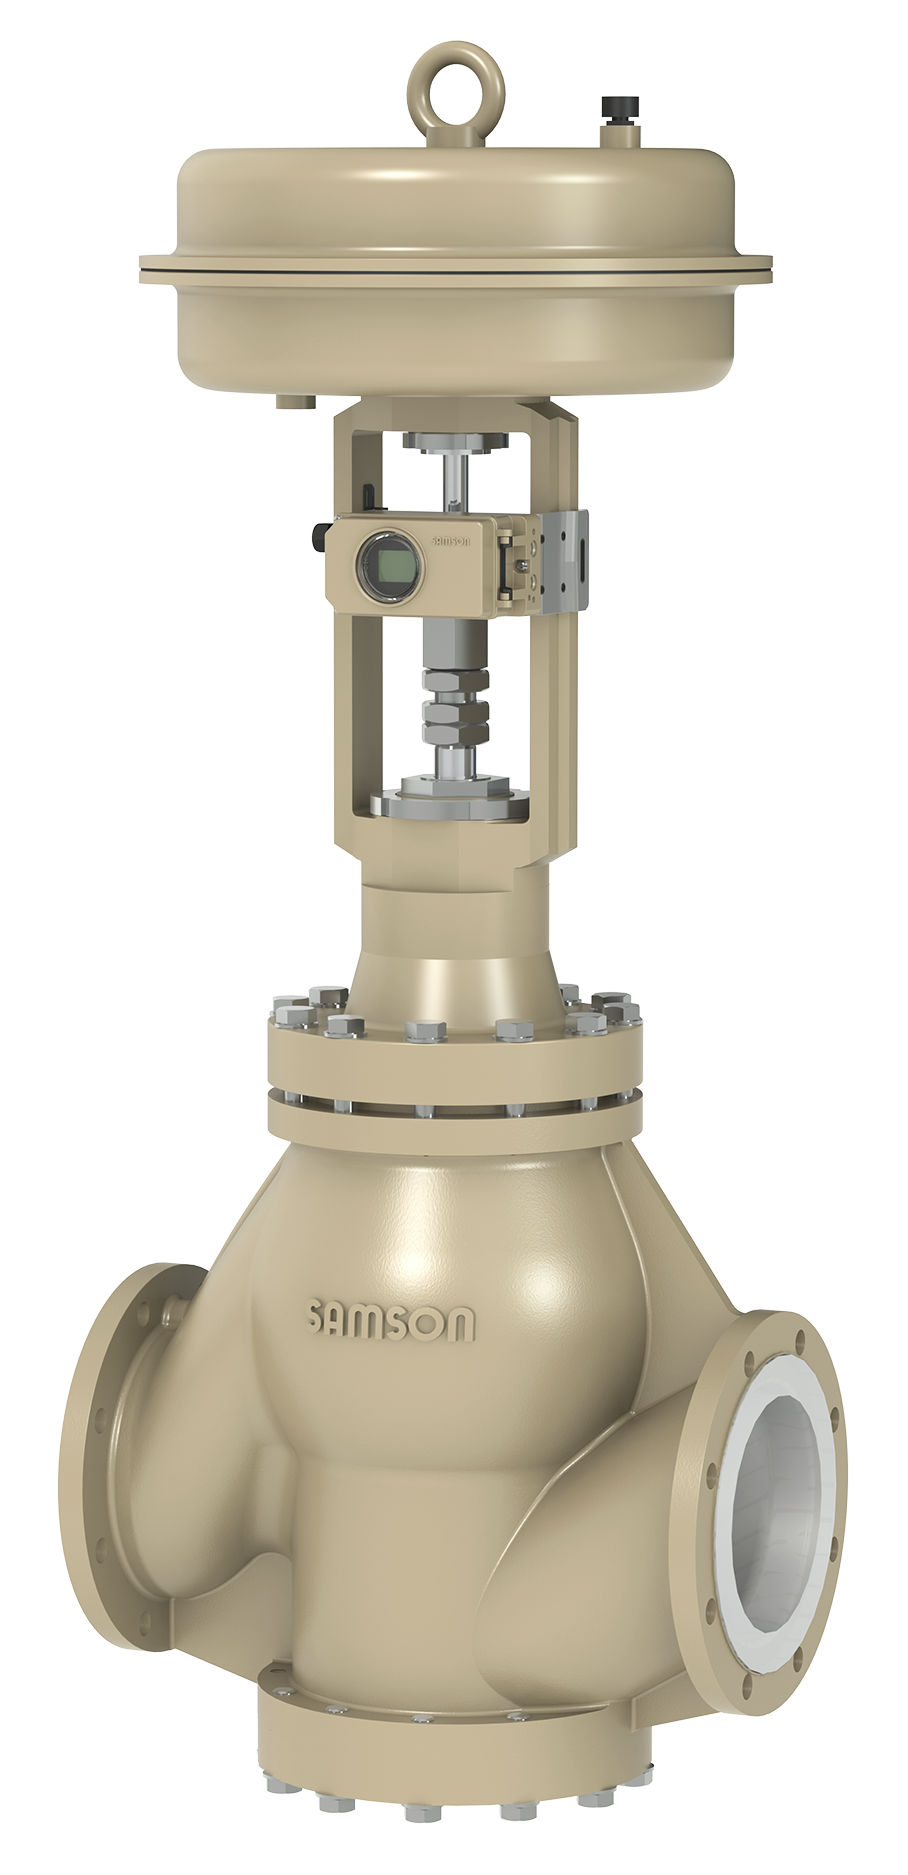 PTFE-lined control valve by SAMSON PFEIFFER